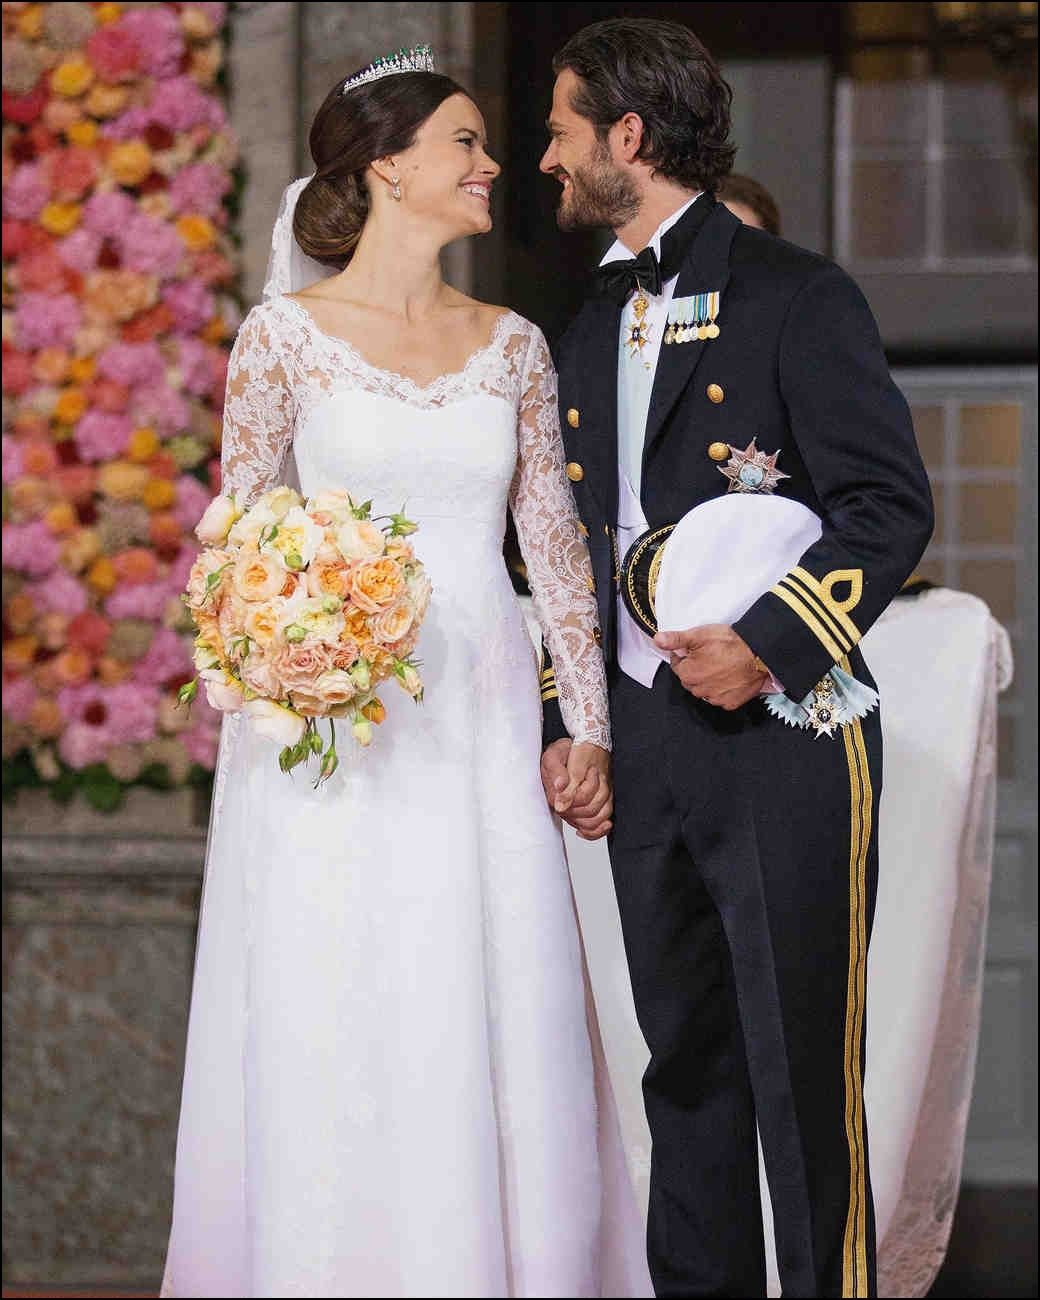 Best Royal Wedding Gowns | Dresses and Gowns Ideas | Pinterest ...